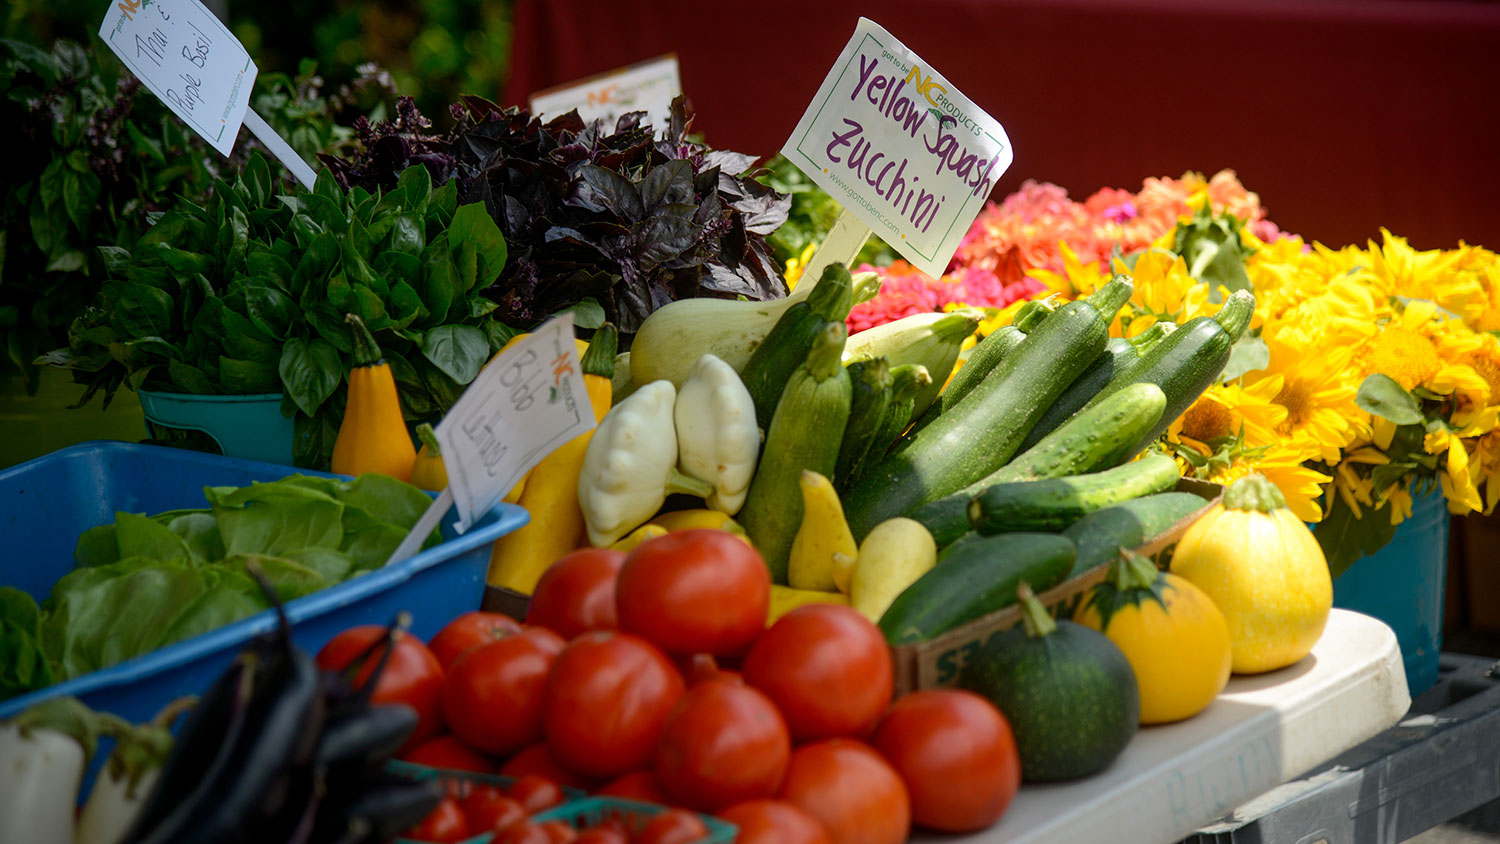 Produce for sale at a farmers market